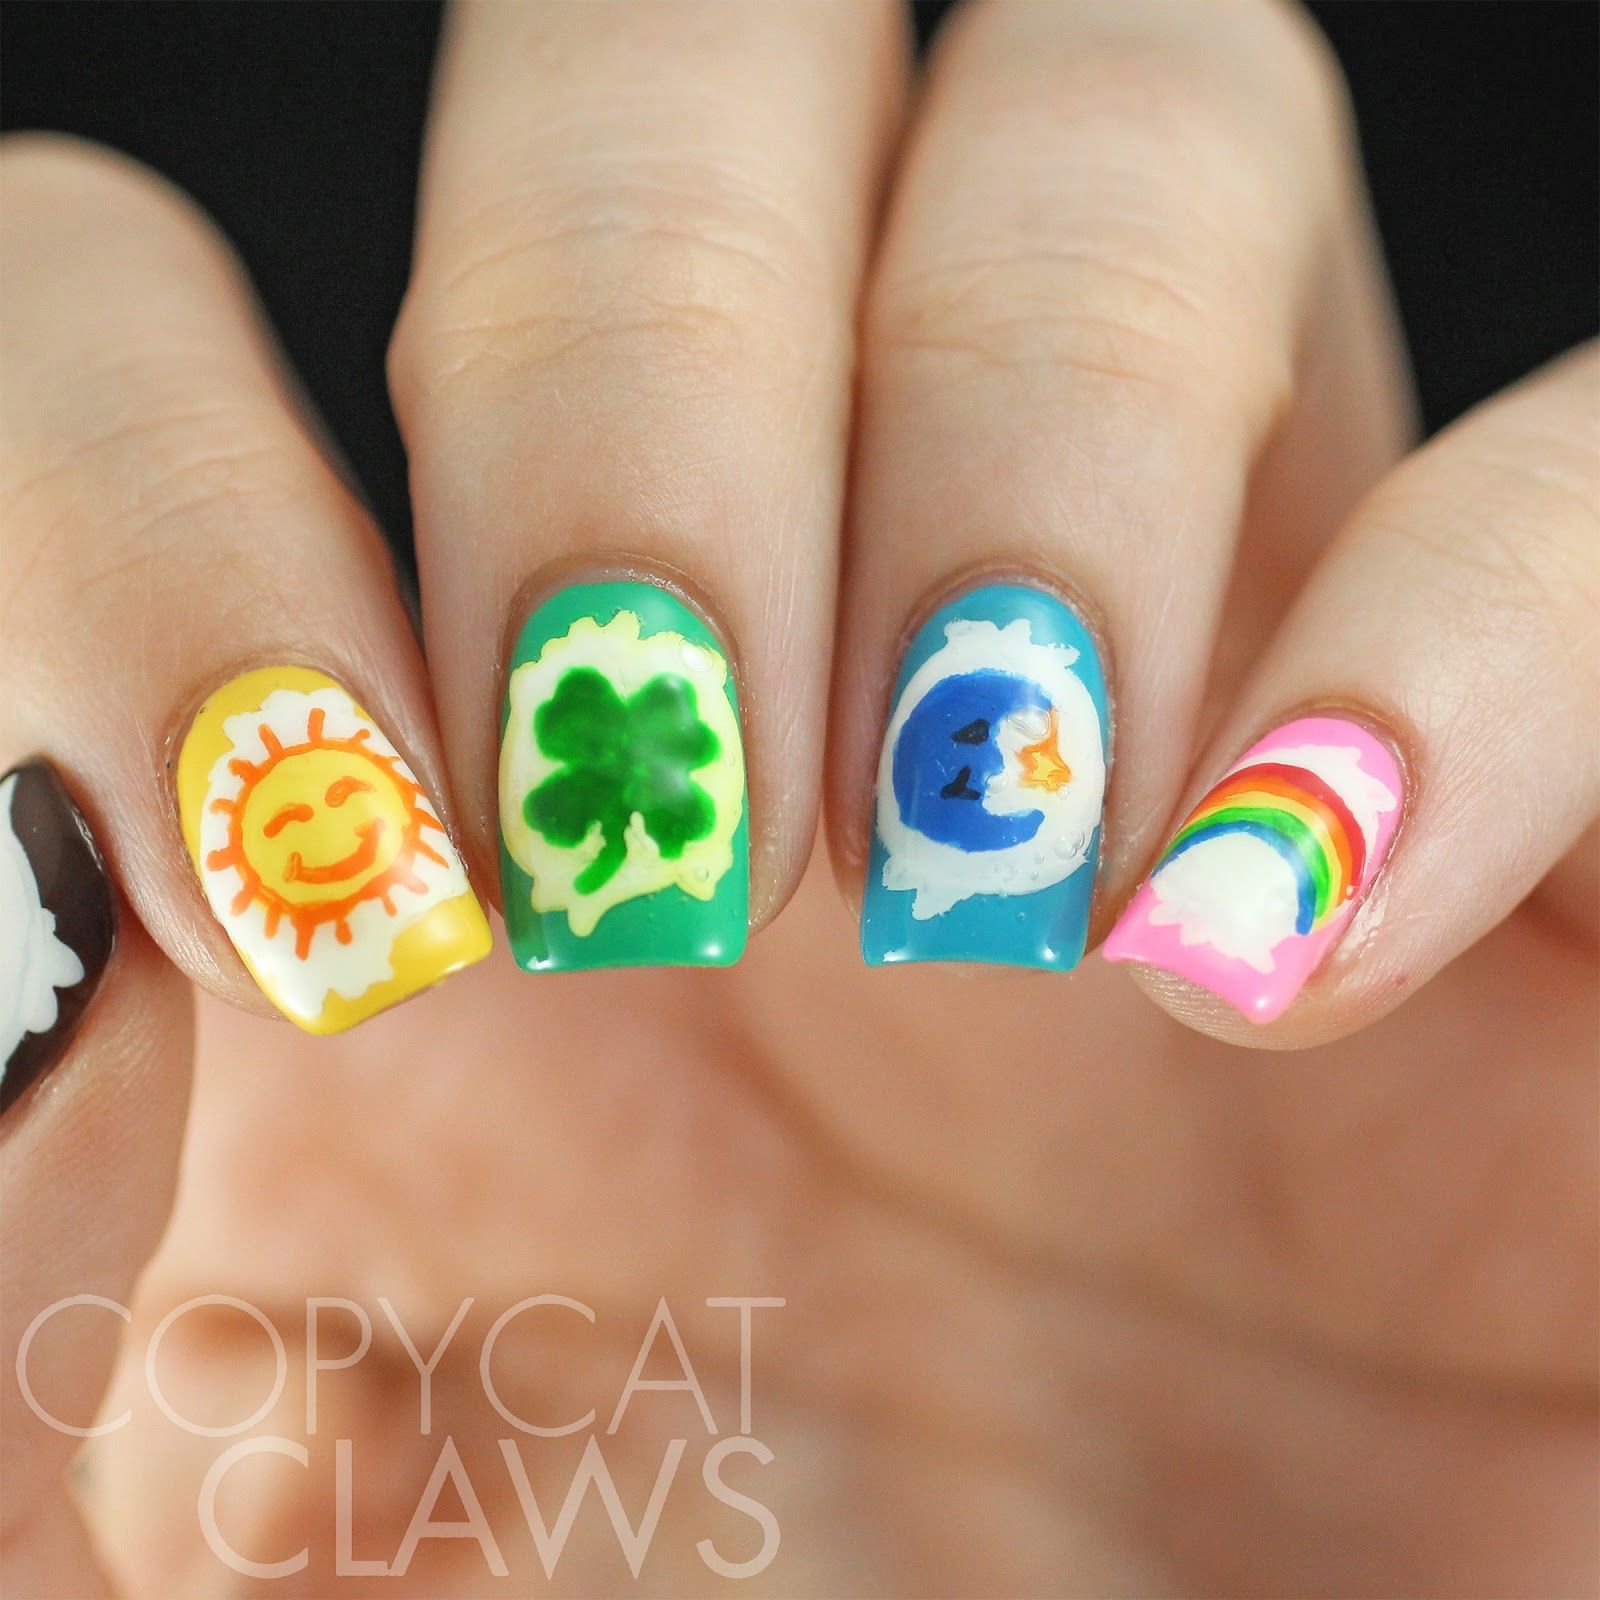 Copycat Claws: 40 Great Nail Art Ideas - Kids TV